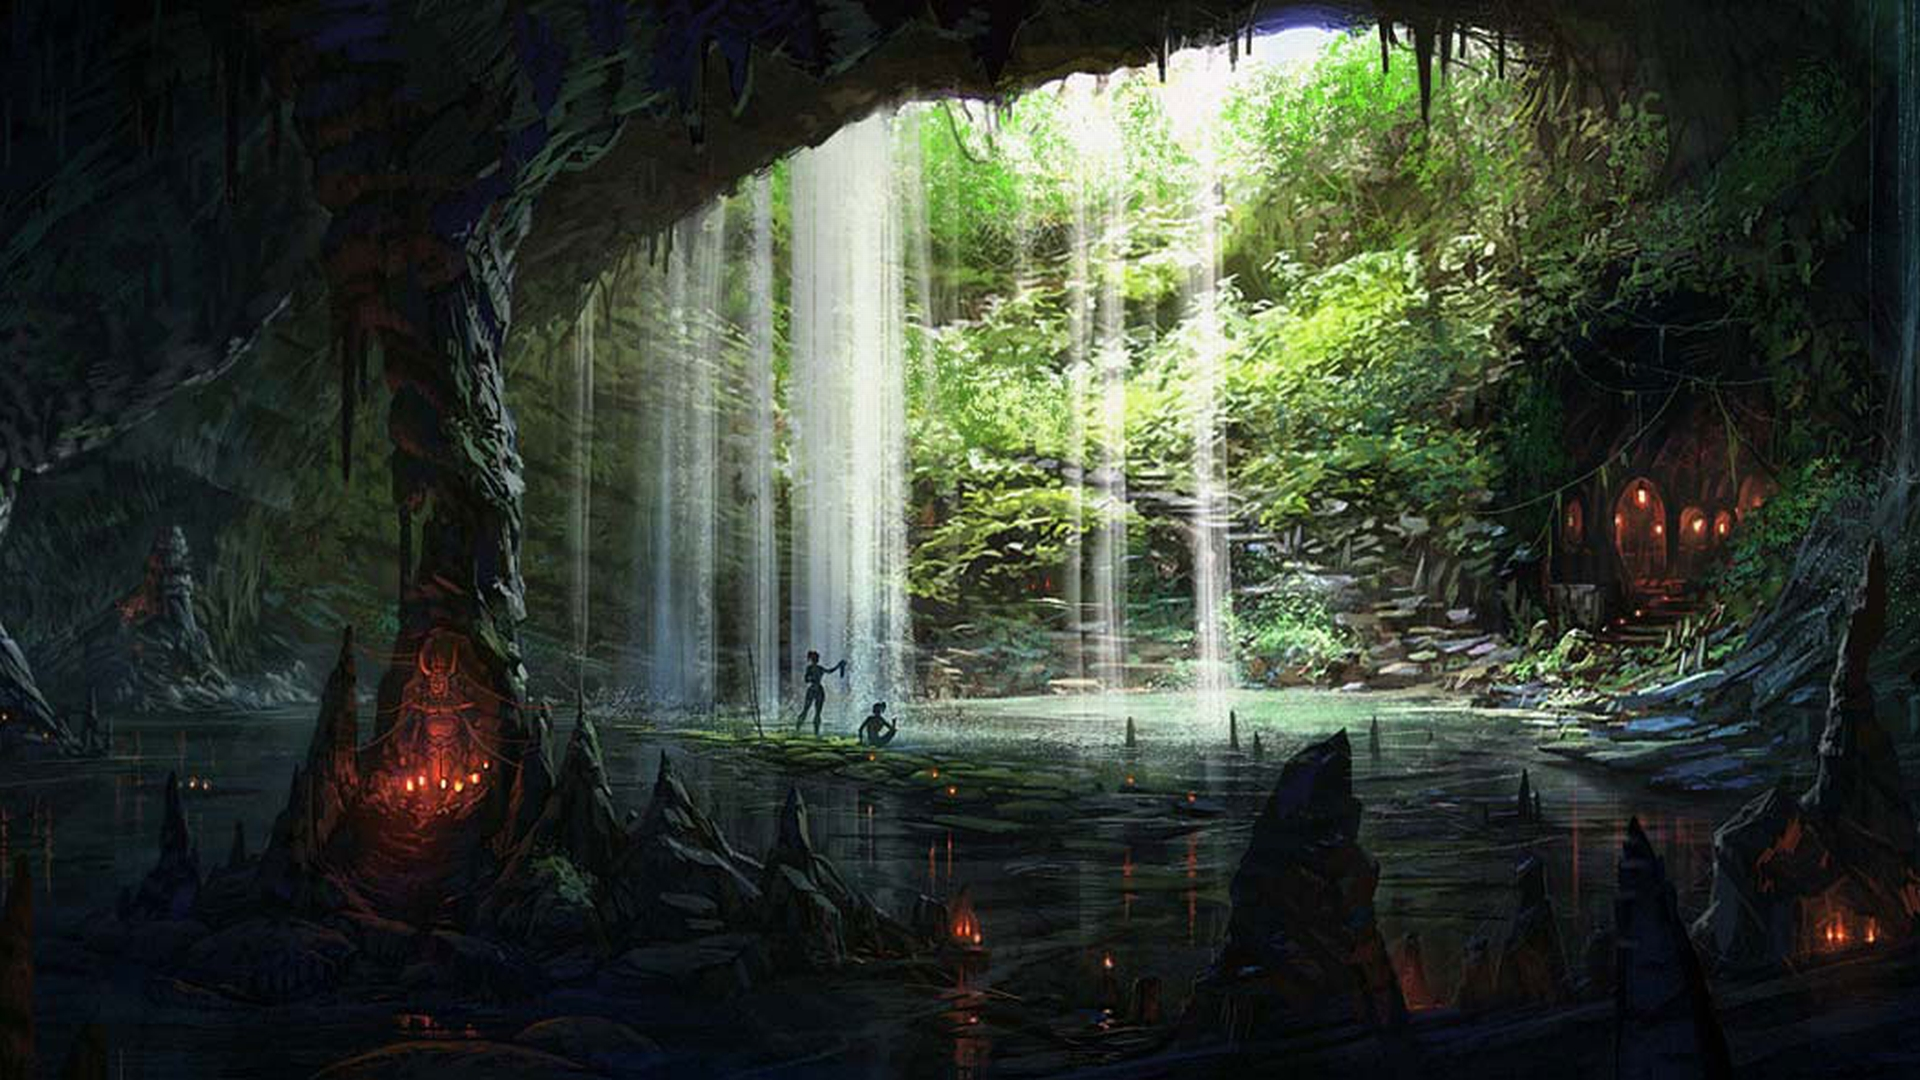 Coders Wallpaper Abyss Explore the Collection Caves Earth Cave 145521 1920x1080